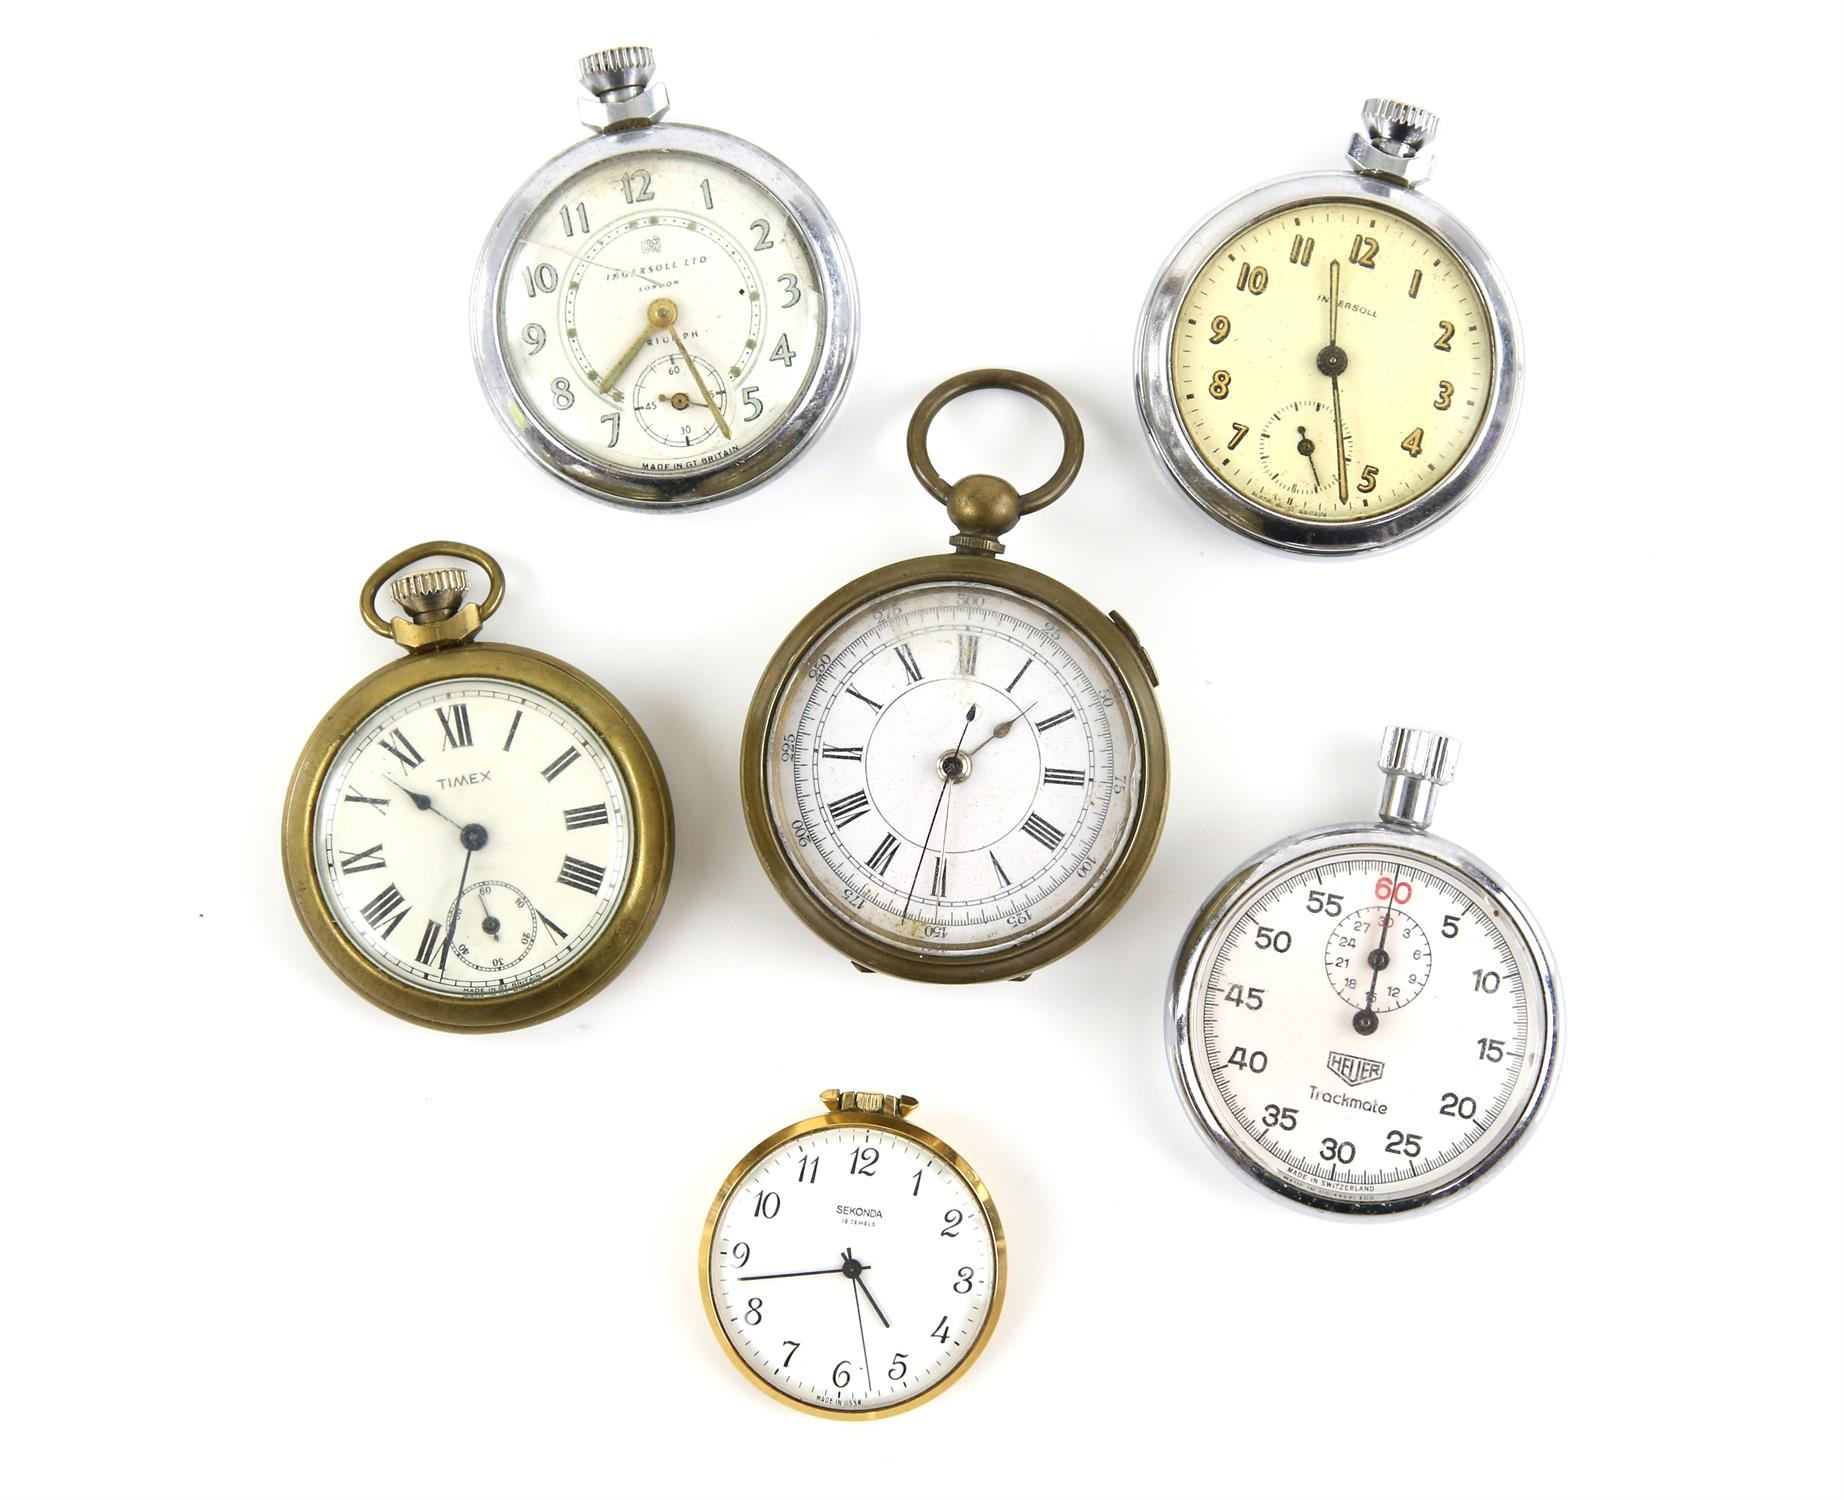 Six pocket watches, including a Heuer, track mate stop pocket watch, with lever wound movement,